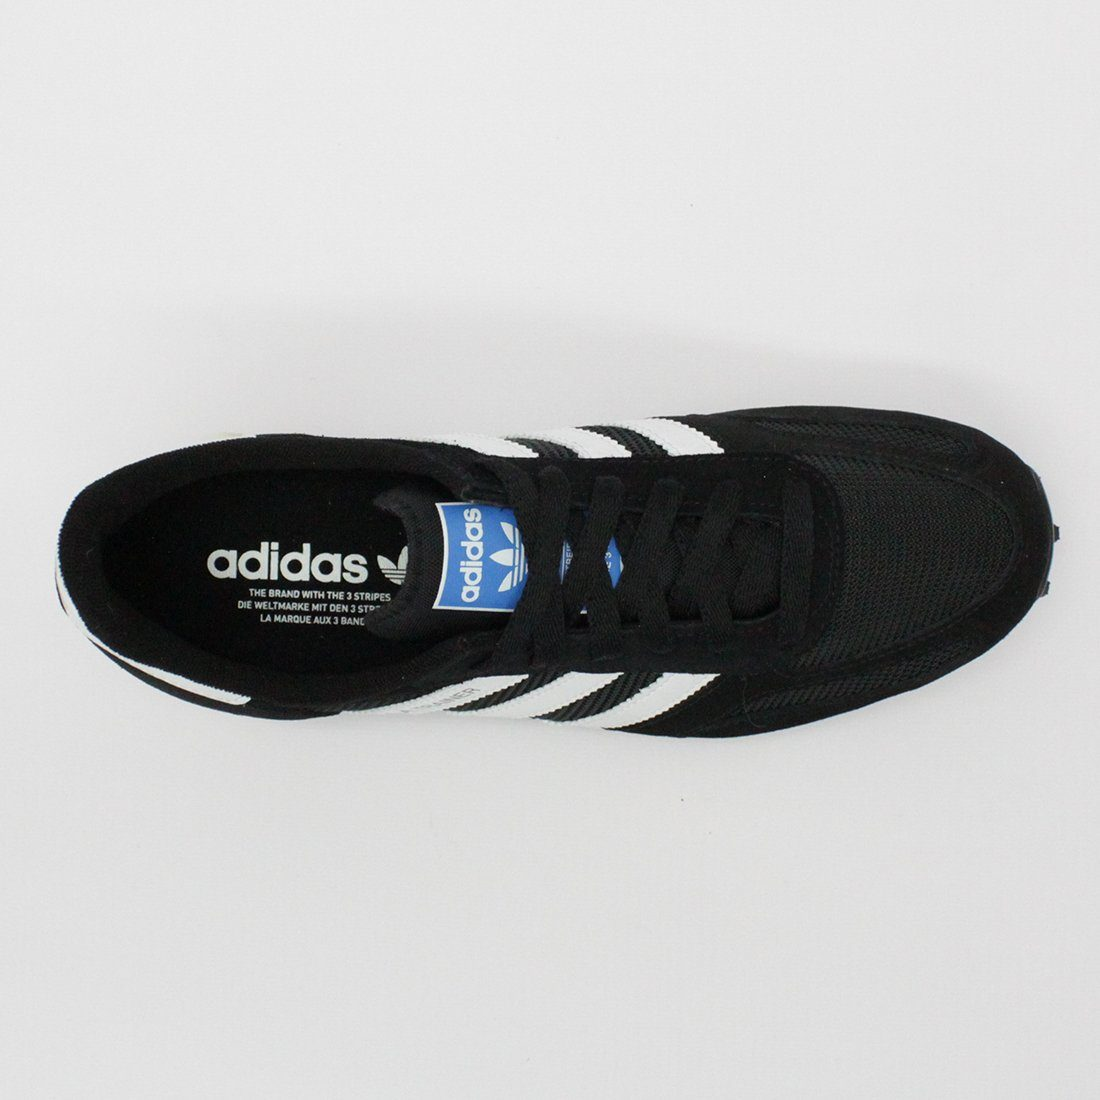 new style 82a74 6a580 adidas la trainer size 9.5